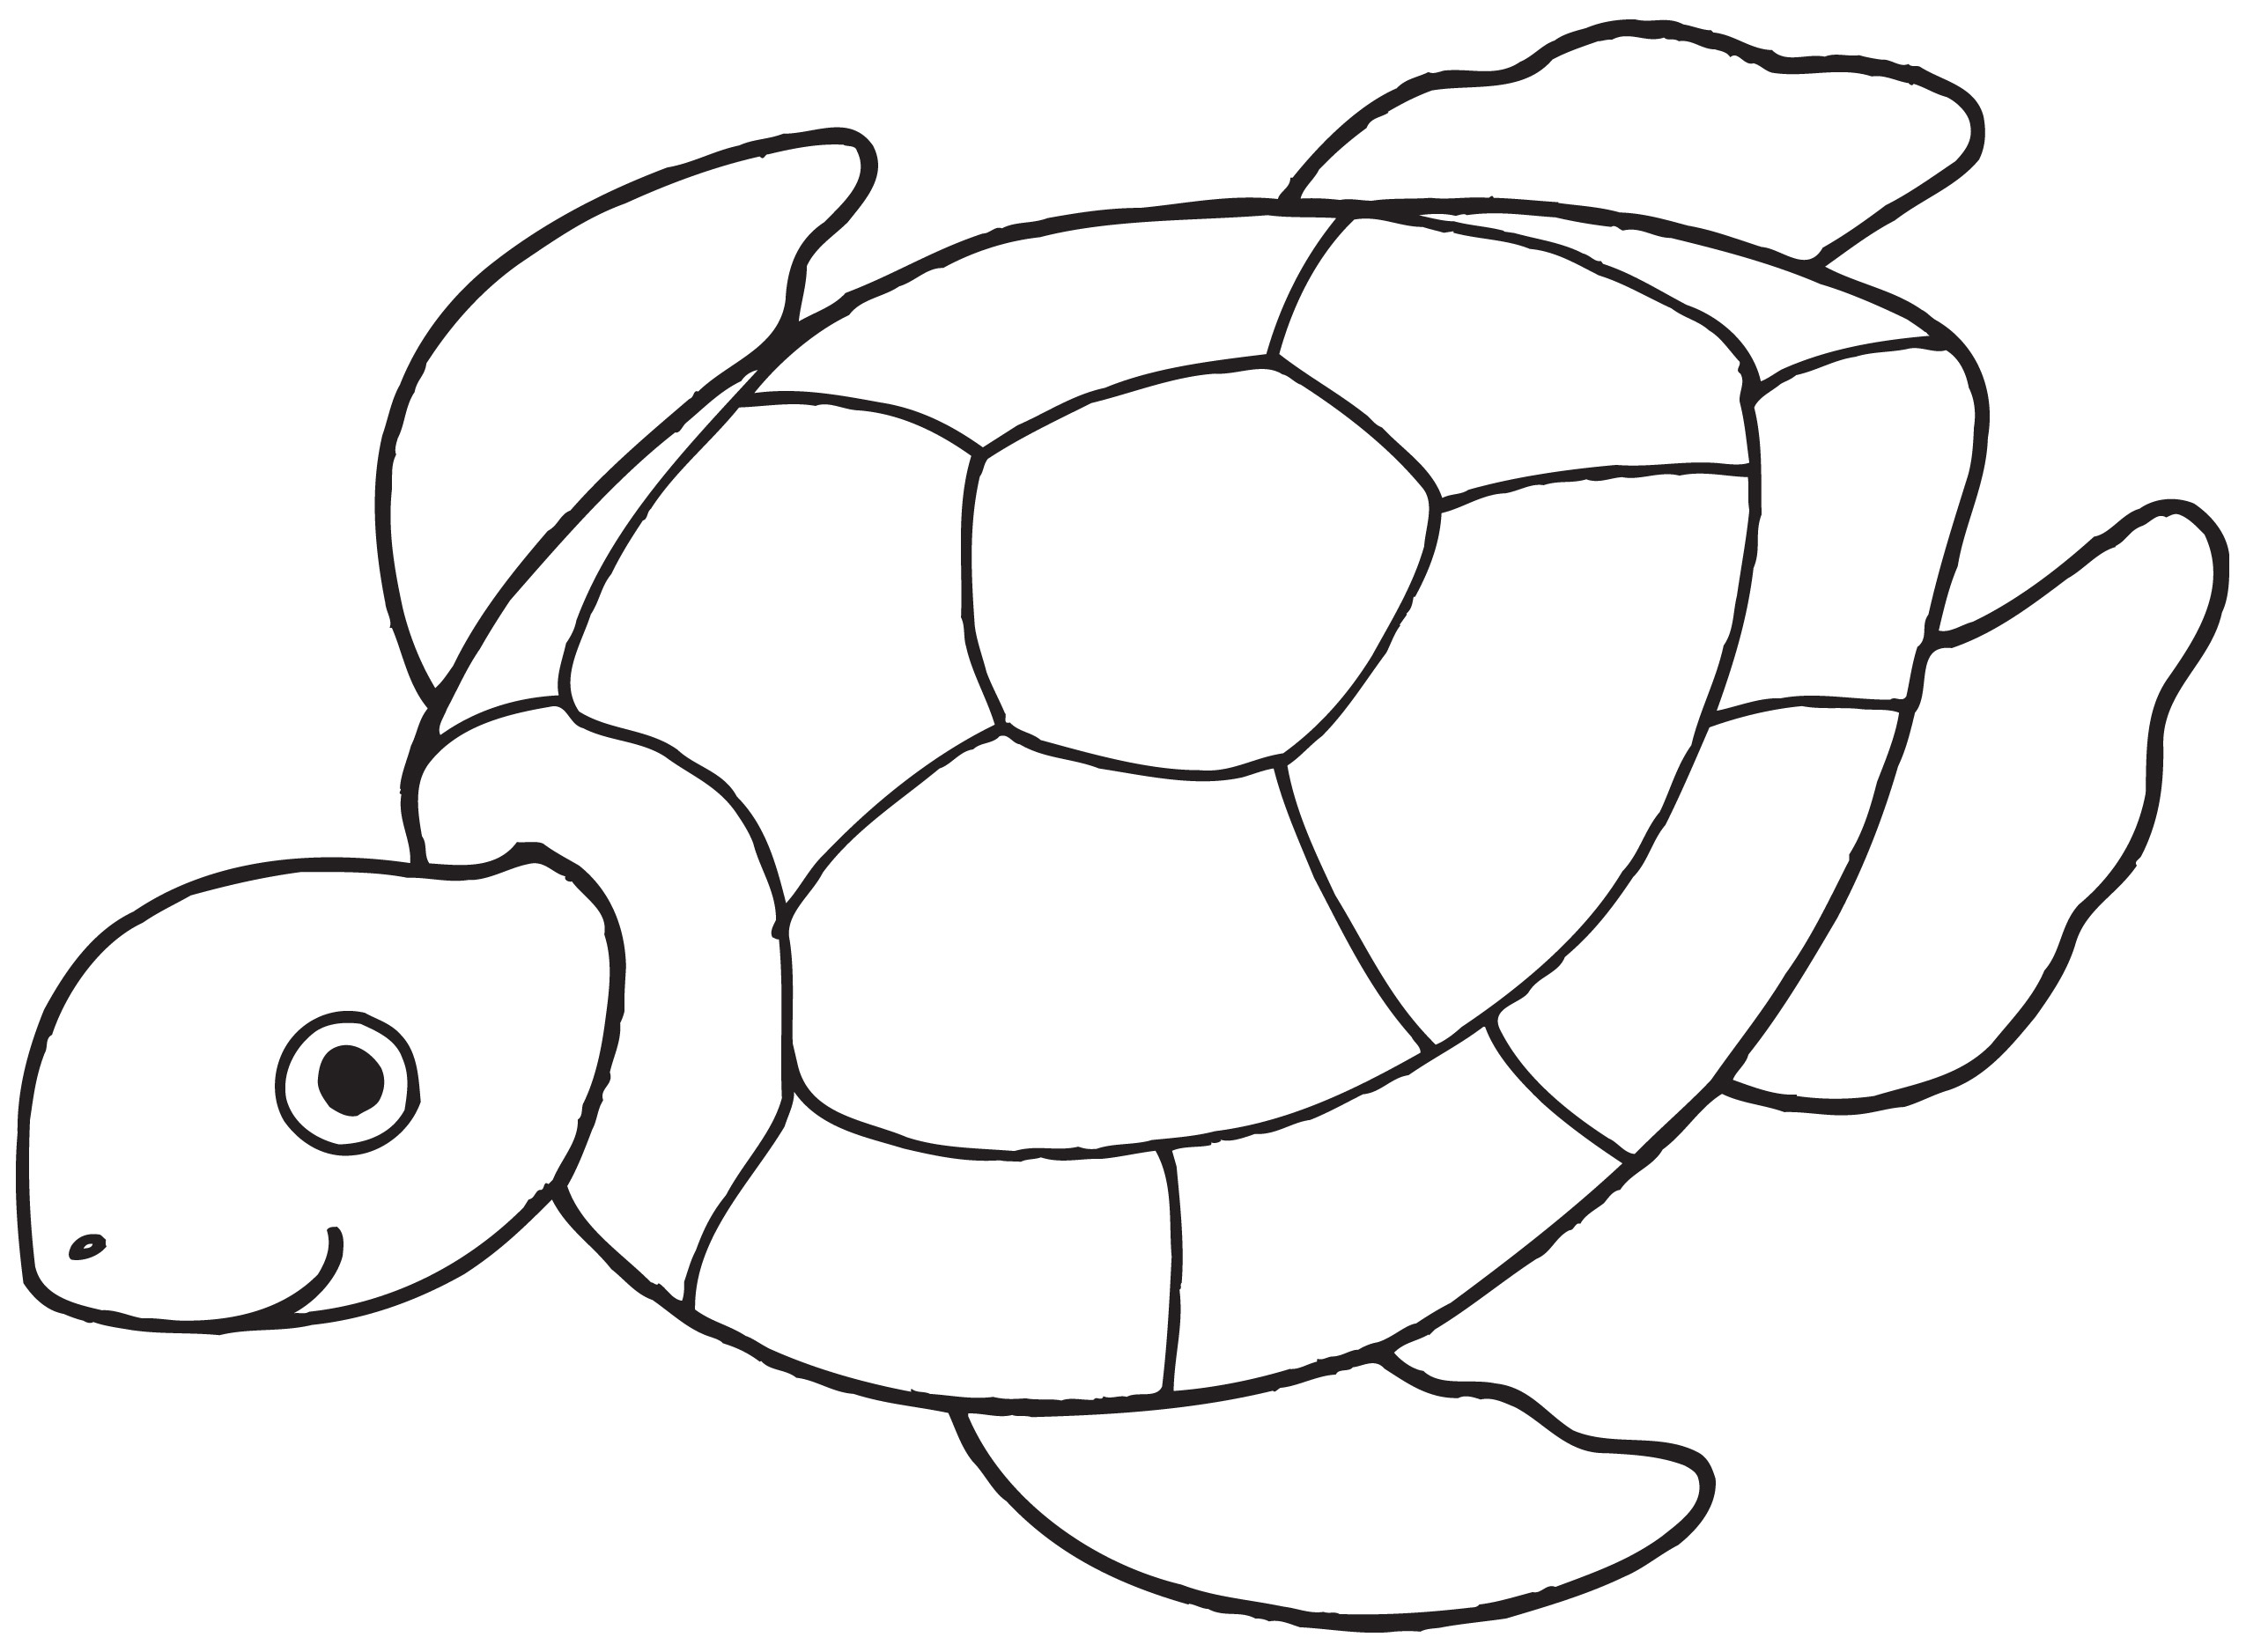 Tortoise clipart coloring page #9